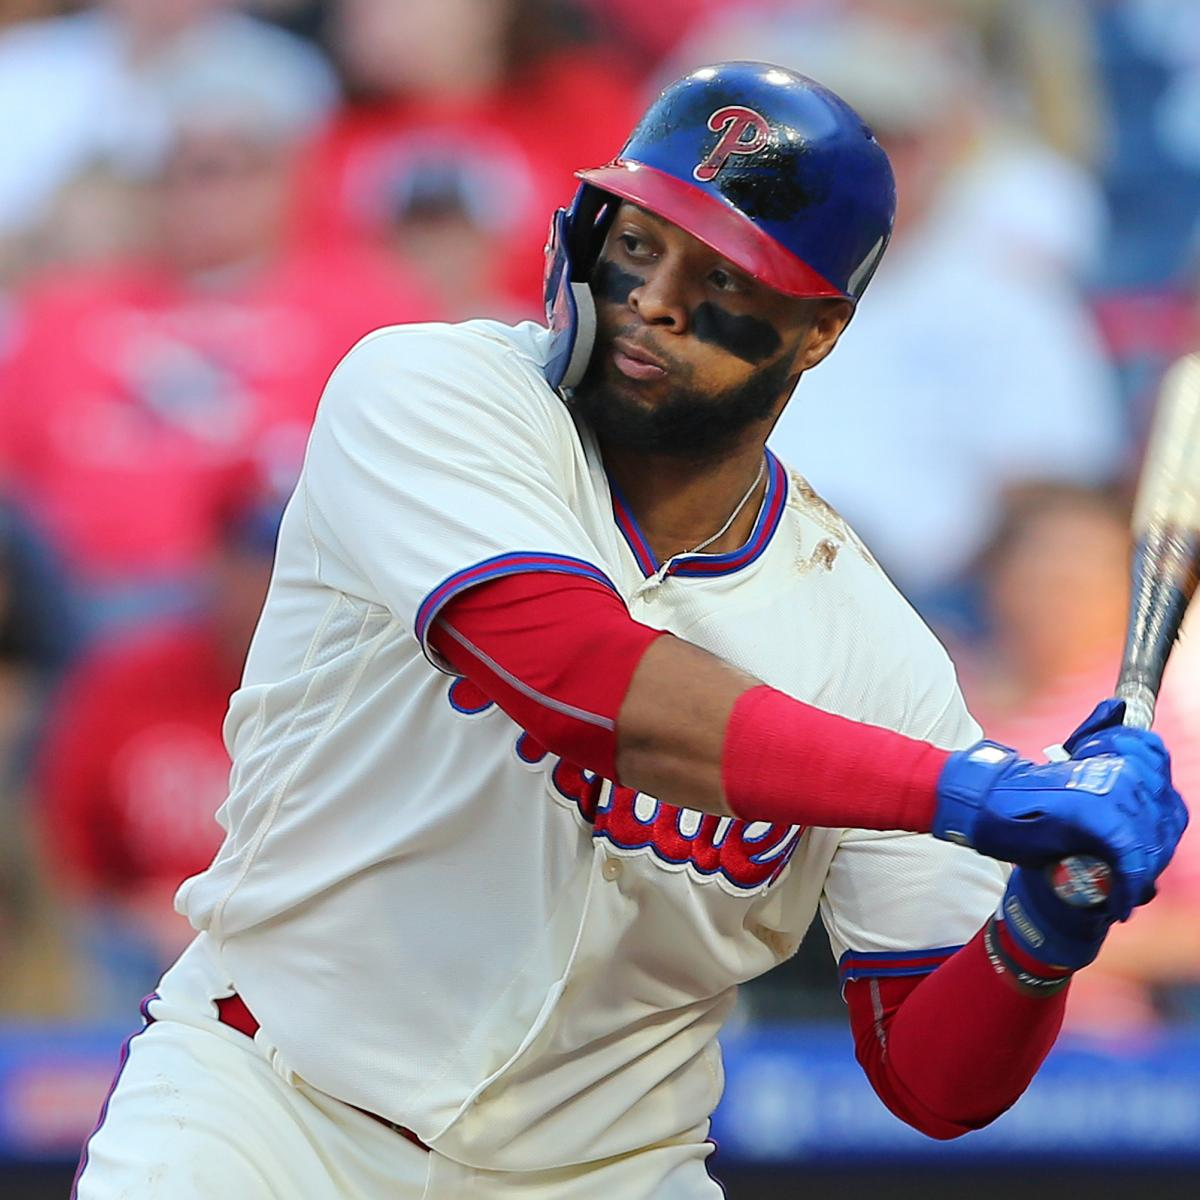 Mlb Rumors Analyzing All The Latest Whispers News And: MLB Rumors: Latest On Bryce Harper, Potential Carlos